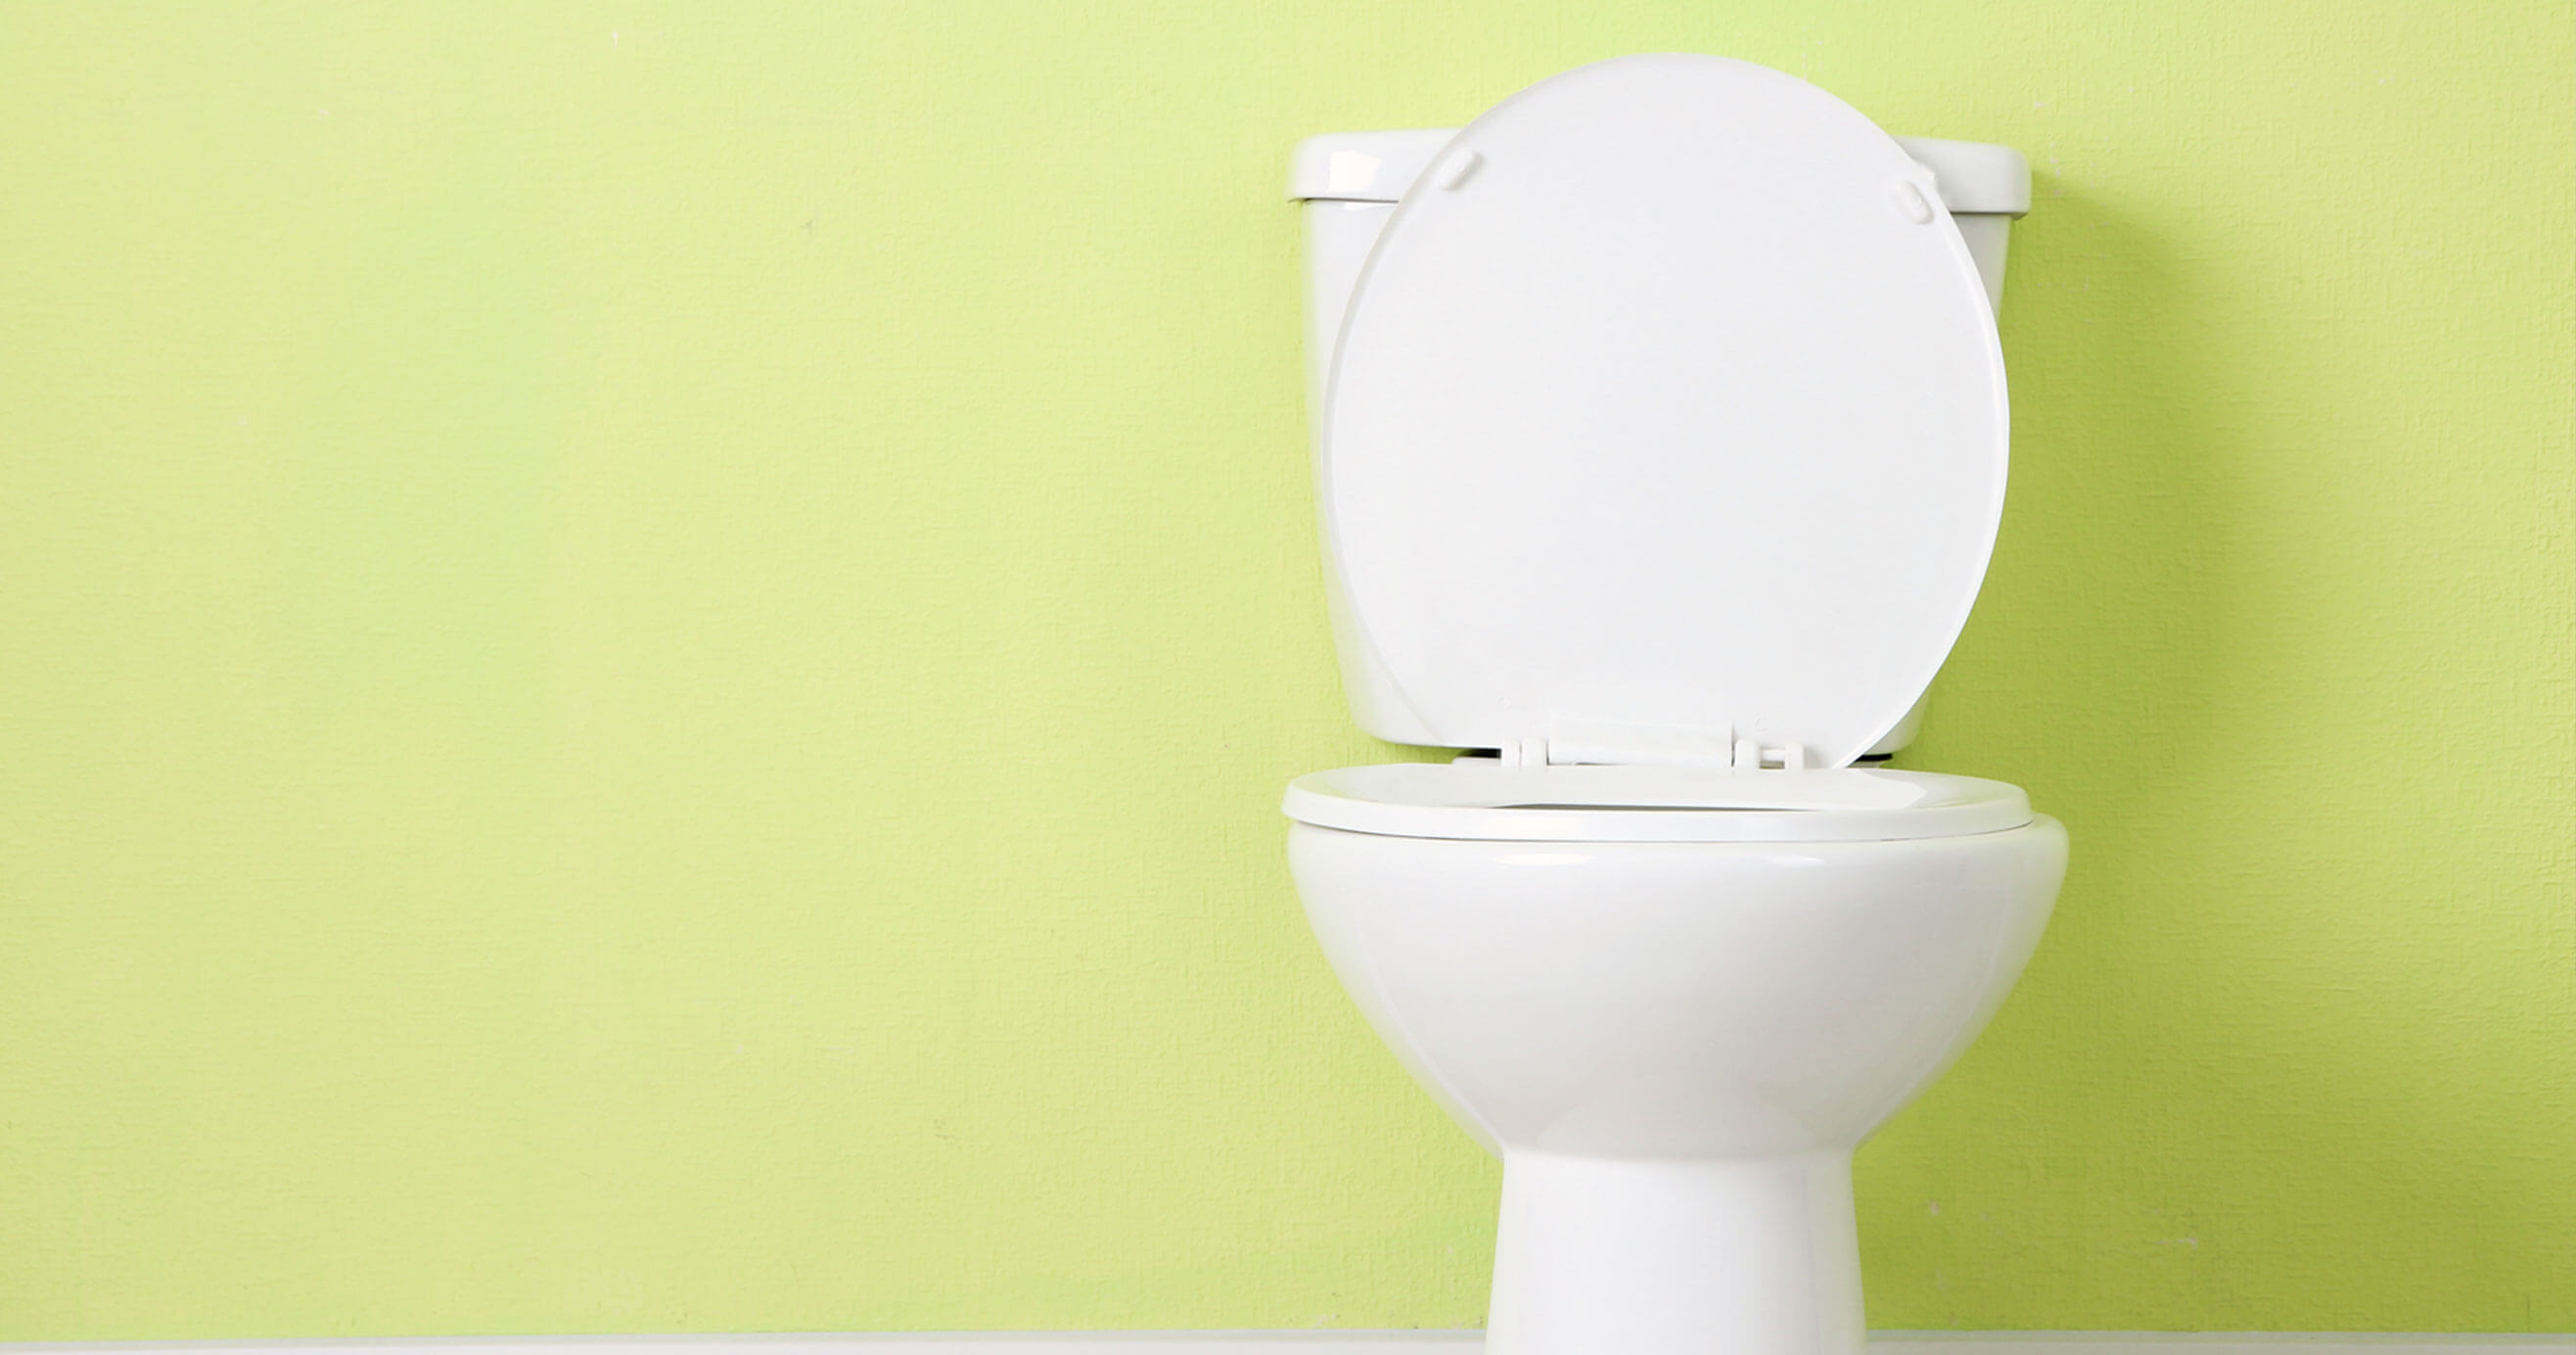 DIY plumbing How to install a toilet | HomeServe USA